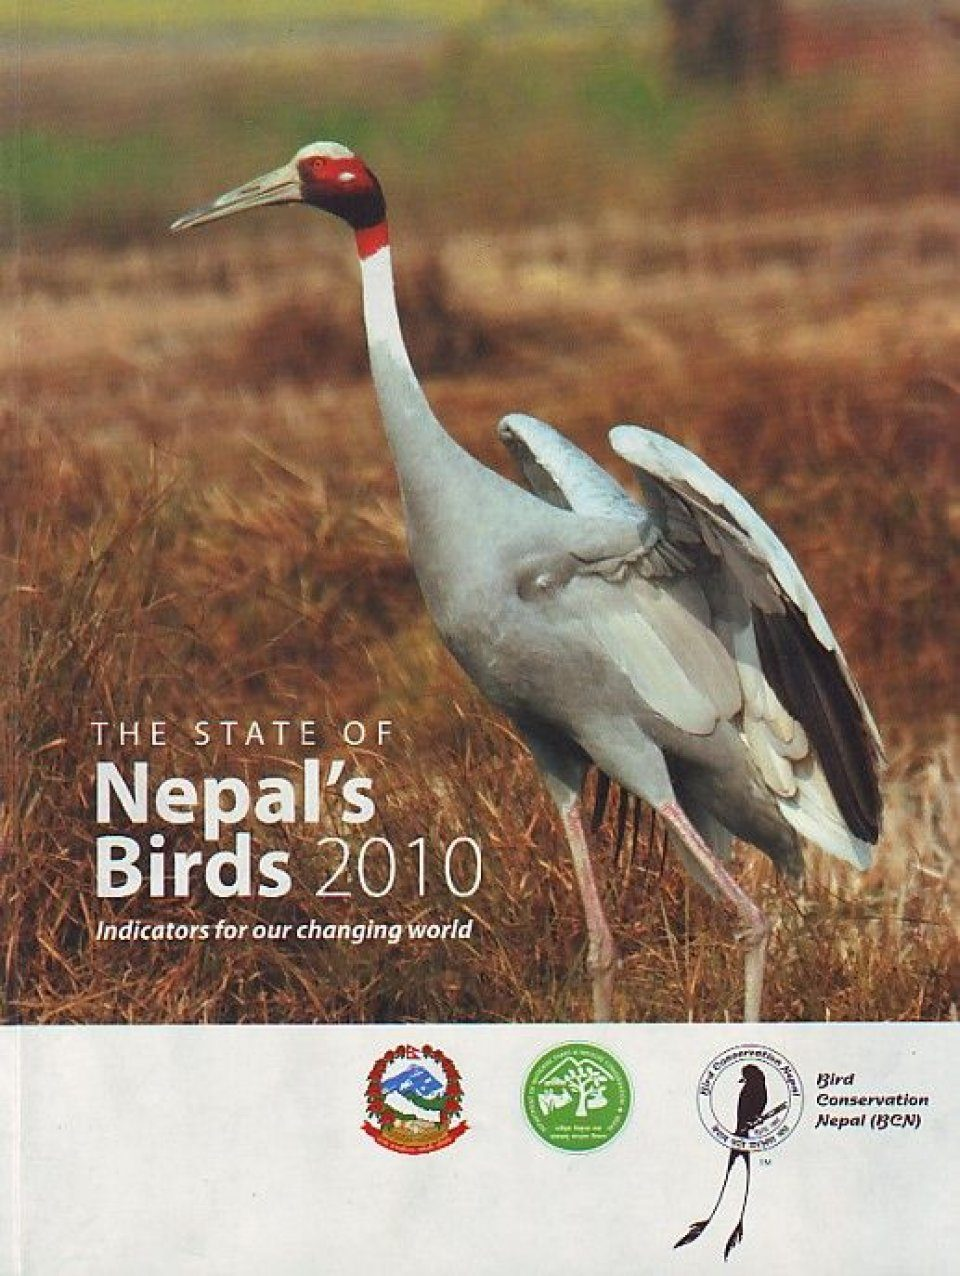 The State of Nepal's Birds 2010